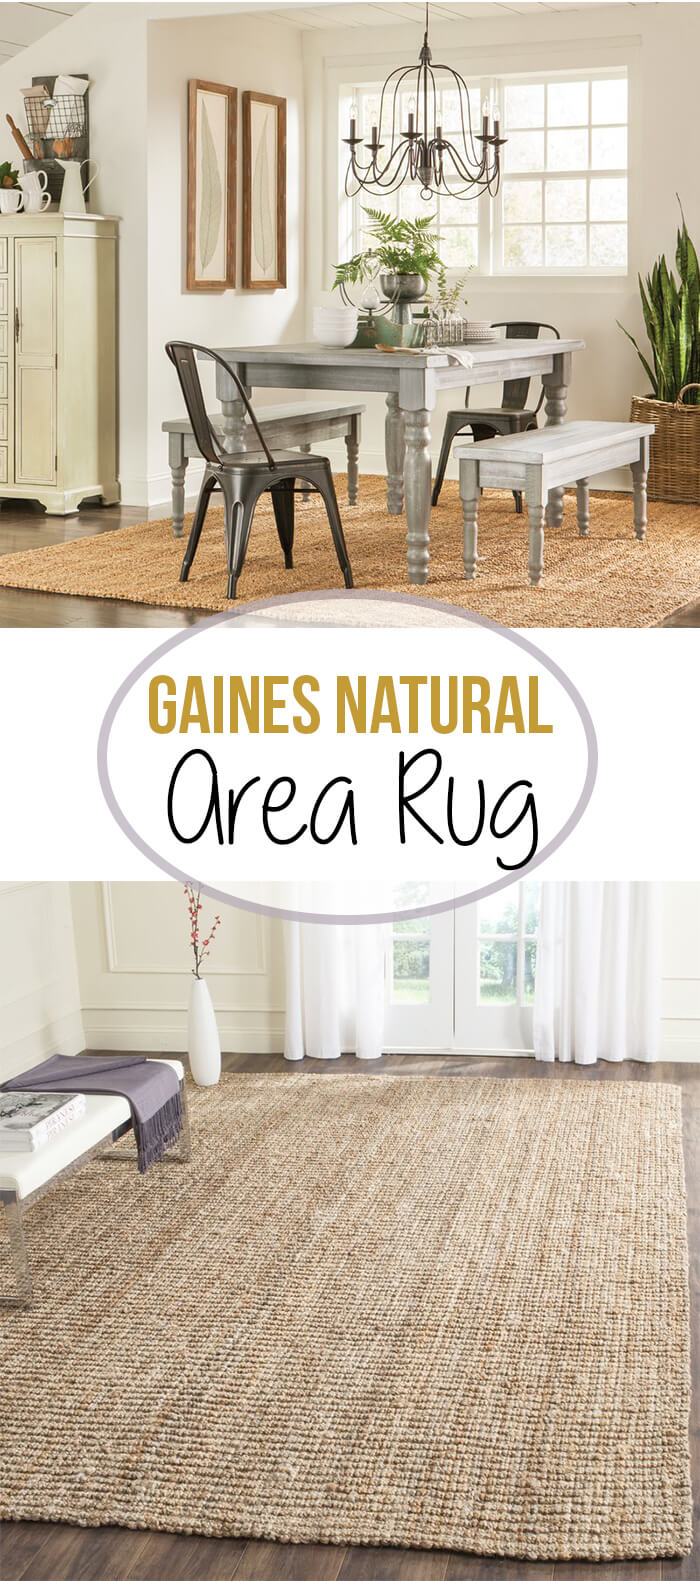 Handwoven Natural Jute Area Rug